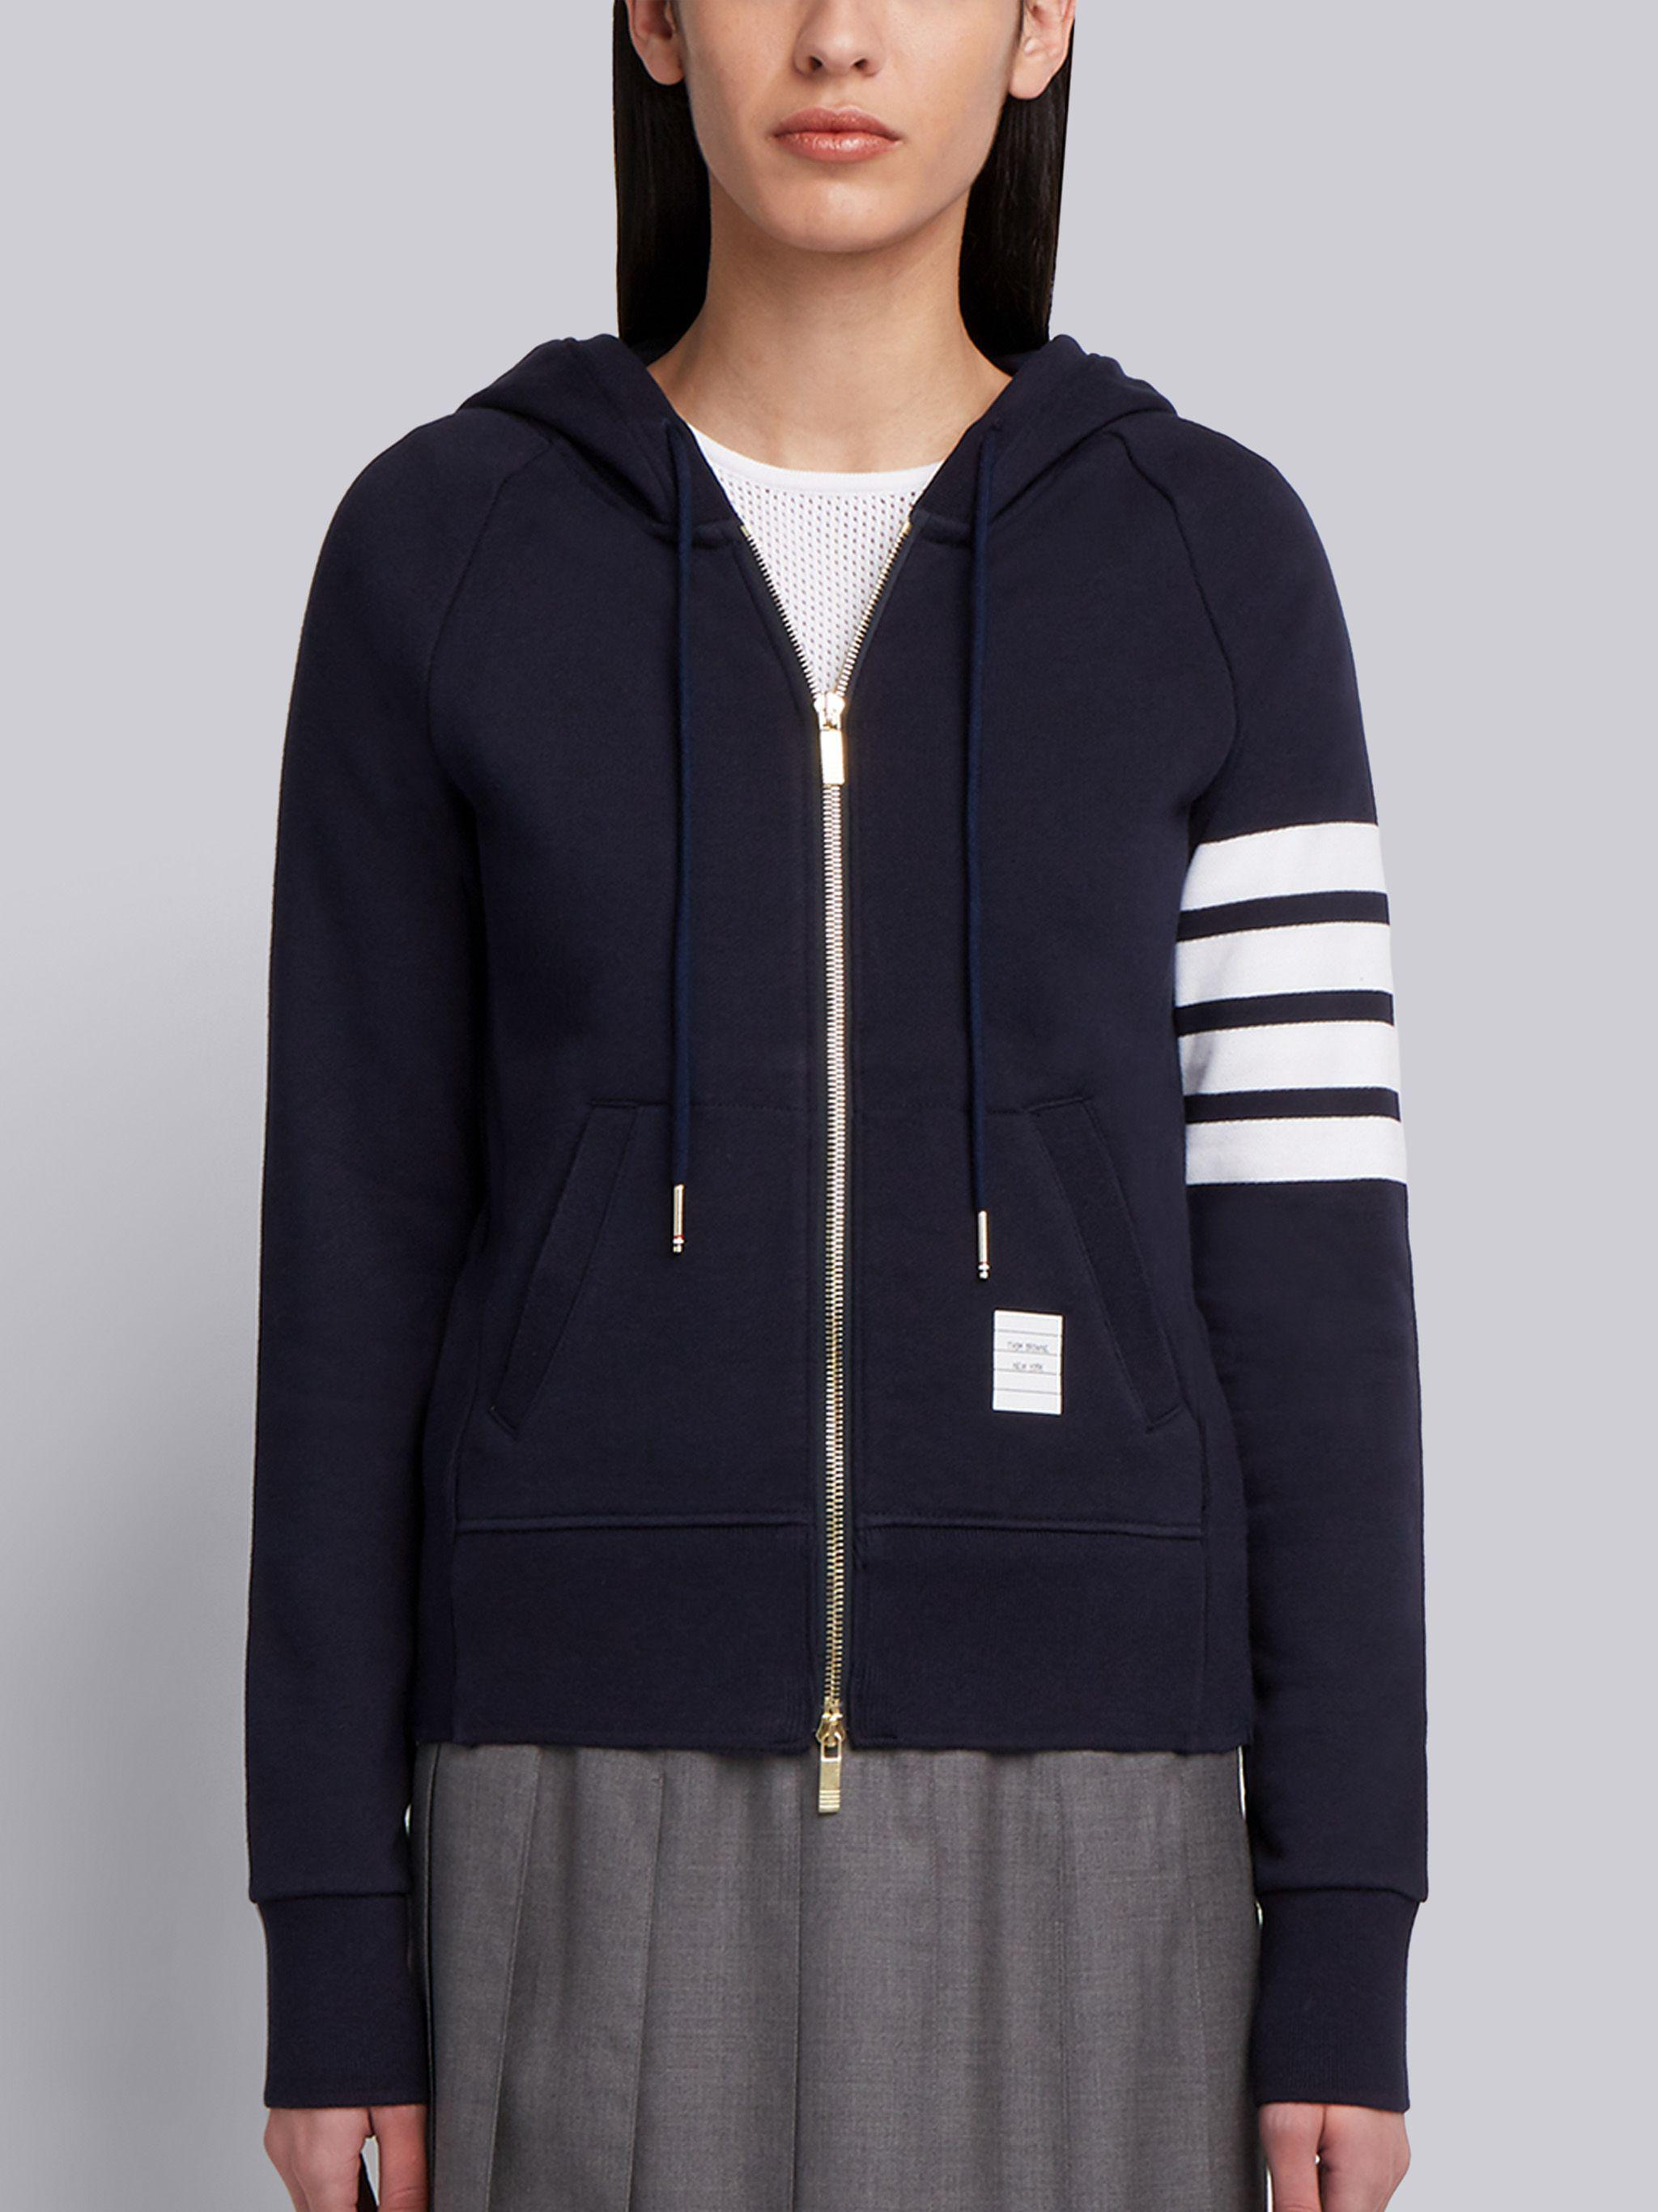 Navy Loopback Jersey Knit Engineered 4-bar Stripe Classic Hoodie